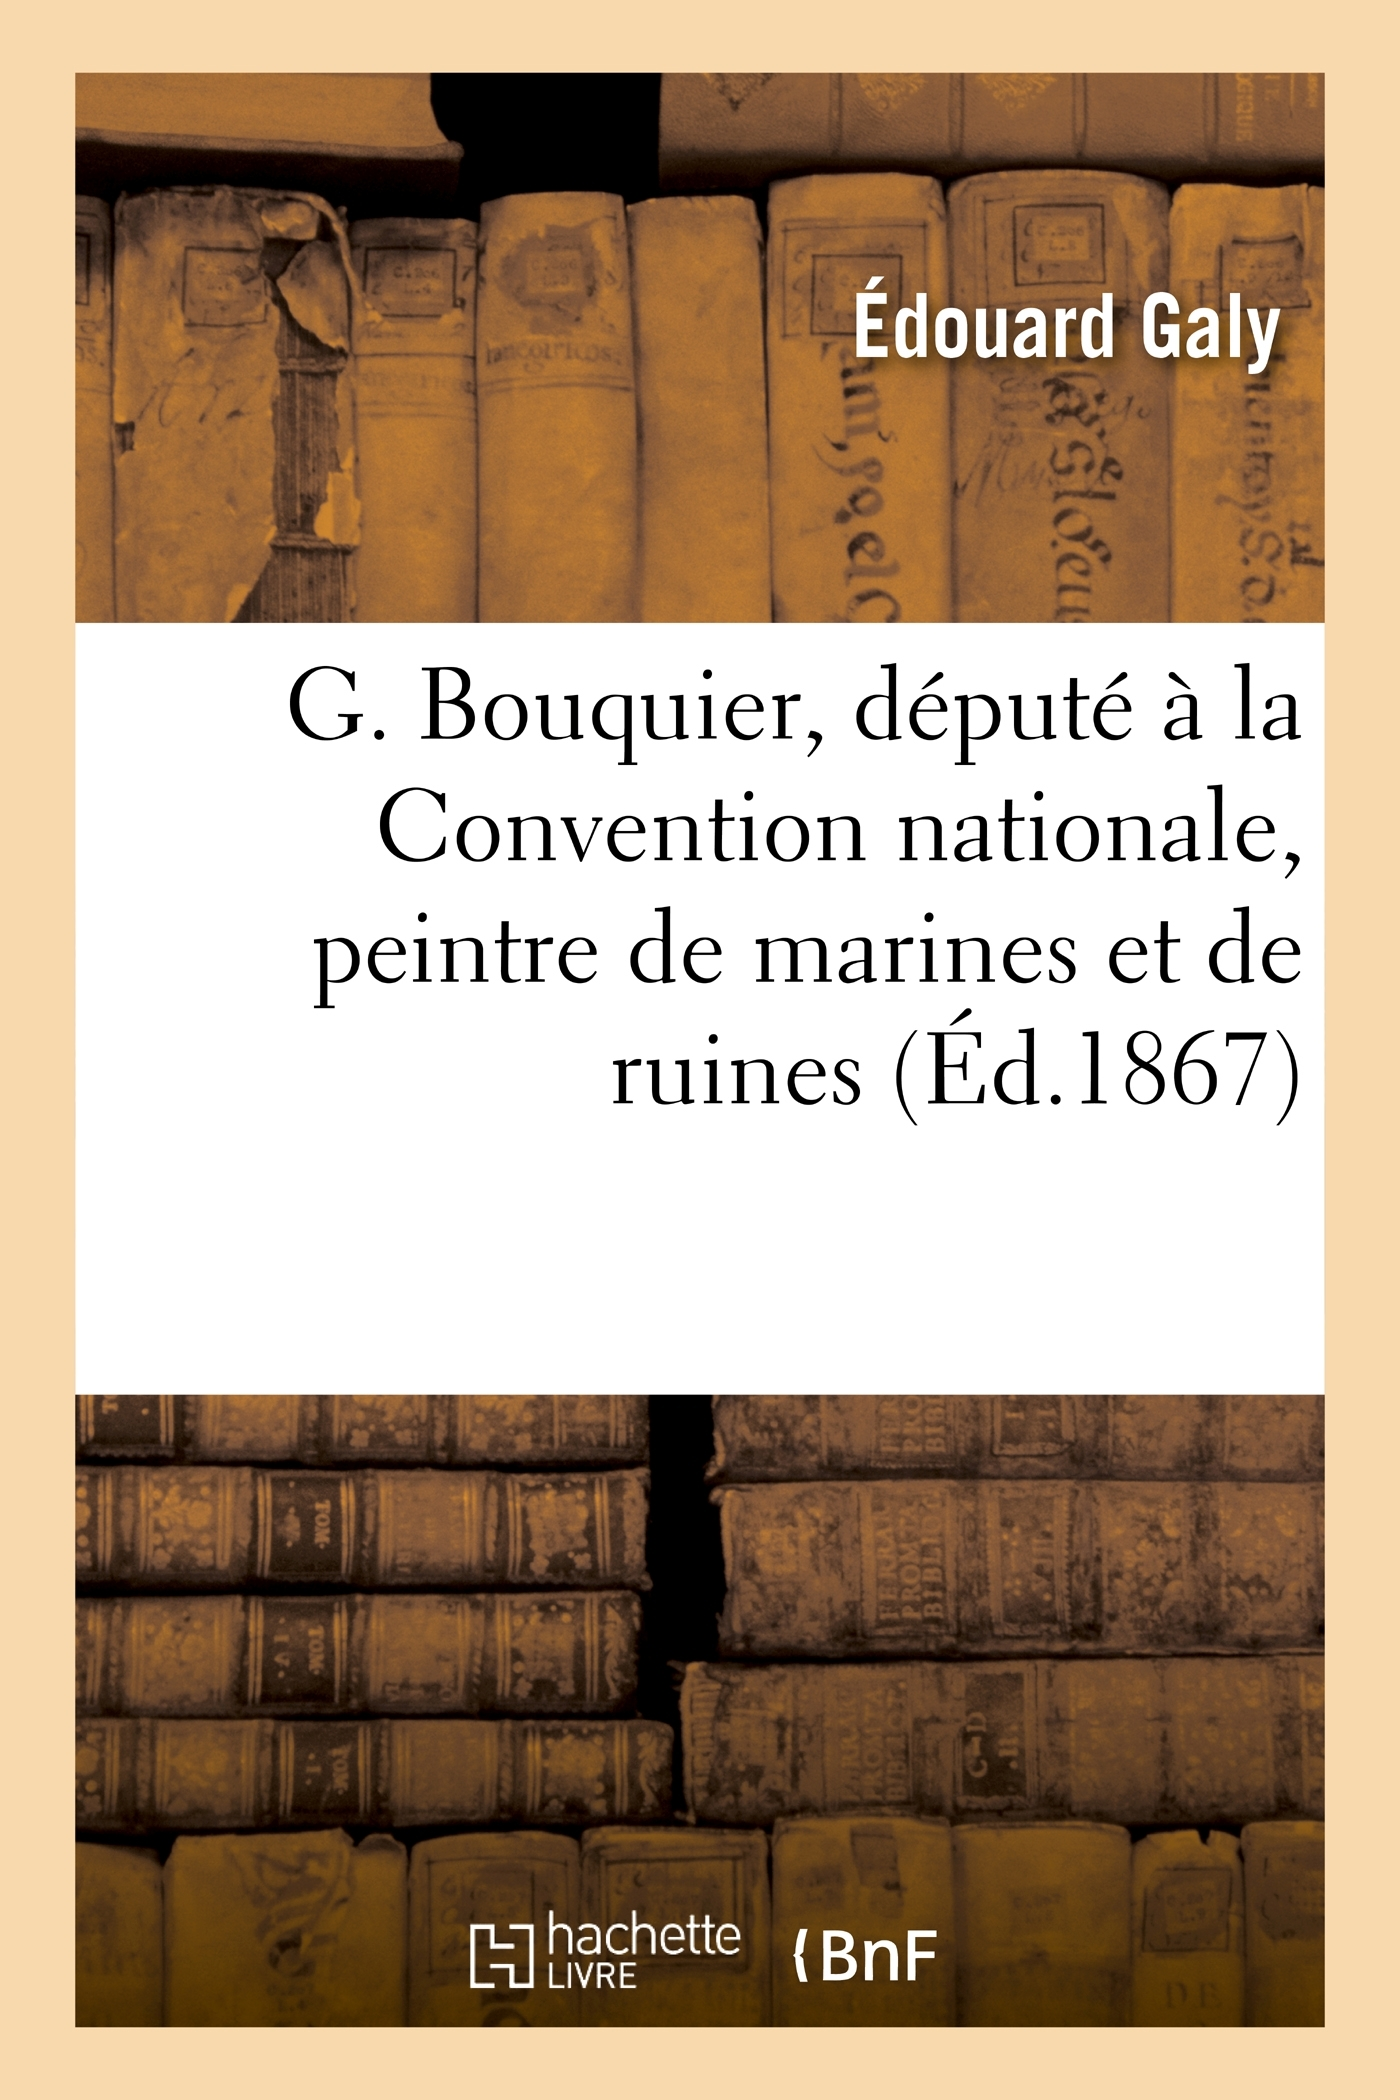 G. BOUQUIER, DEPUTE A LA CONVENTION NATIONALE, PEINTRE DE MARINES ET DE RUINES. NOTES SUR L'ETAT